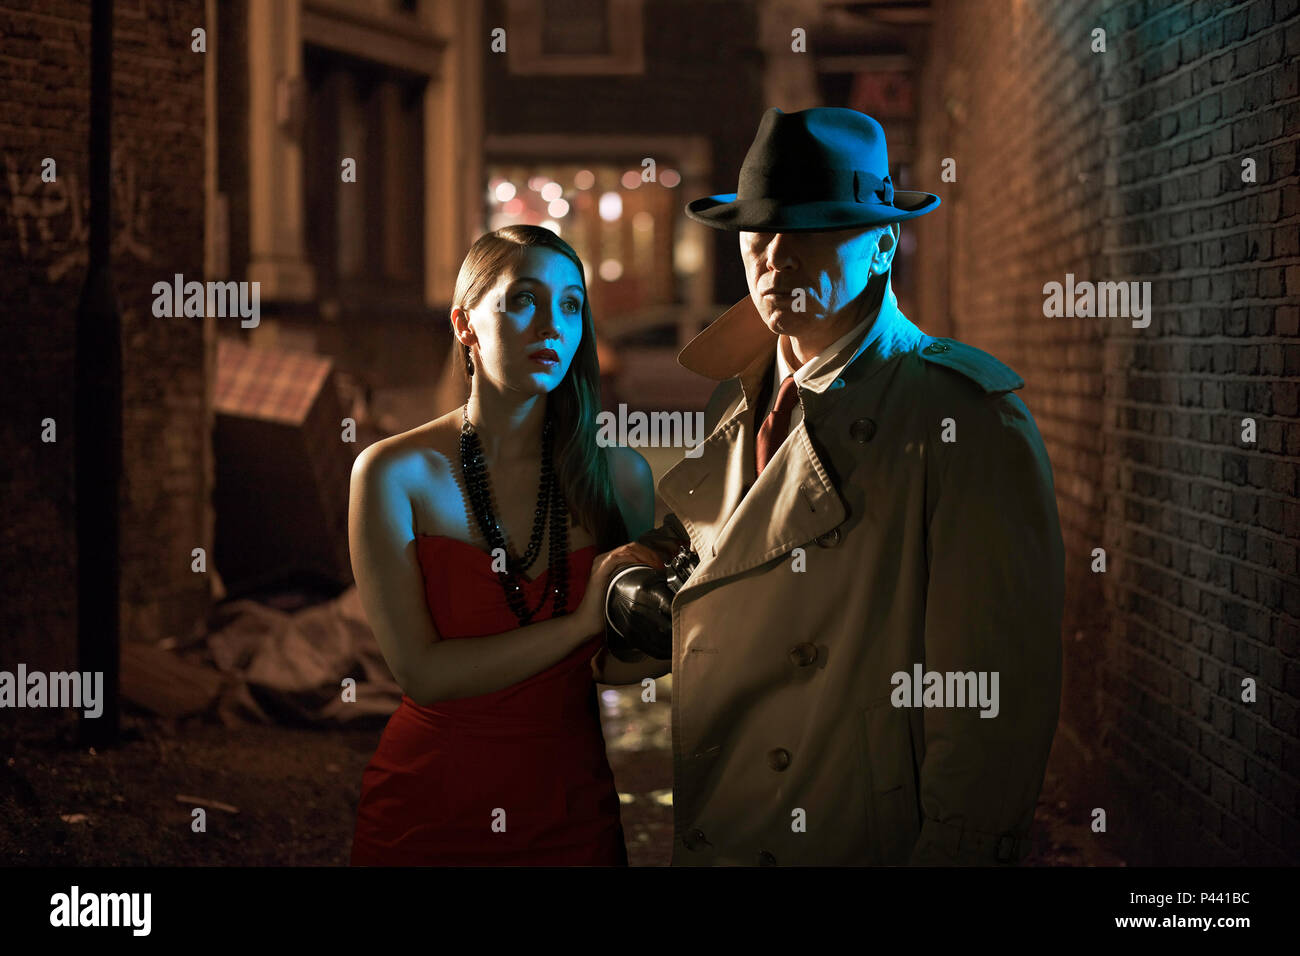 Private detective and woman in an alleyway - Stock Image